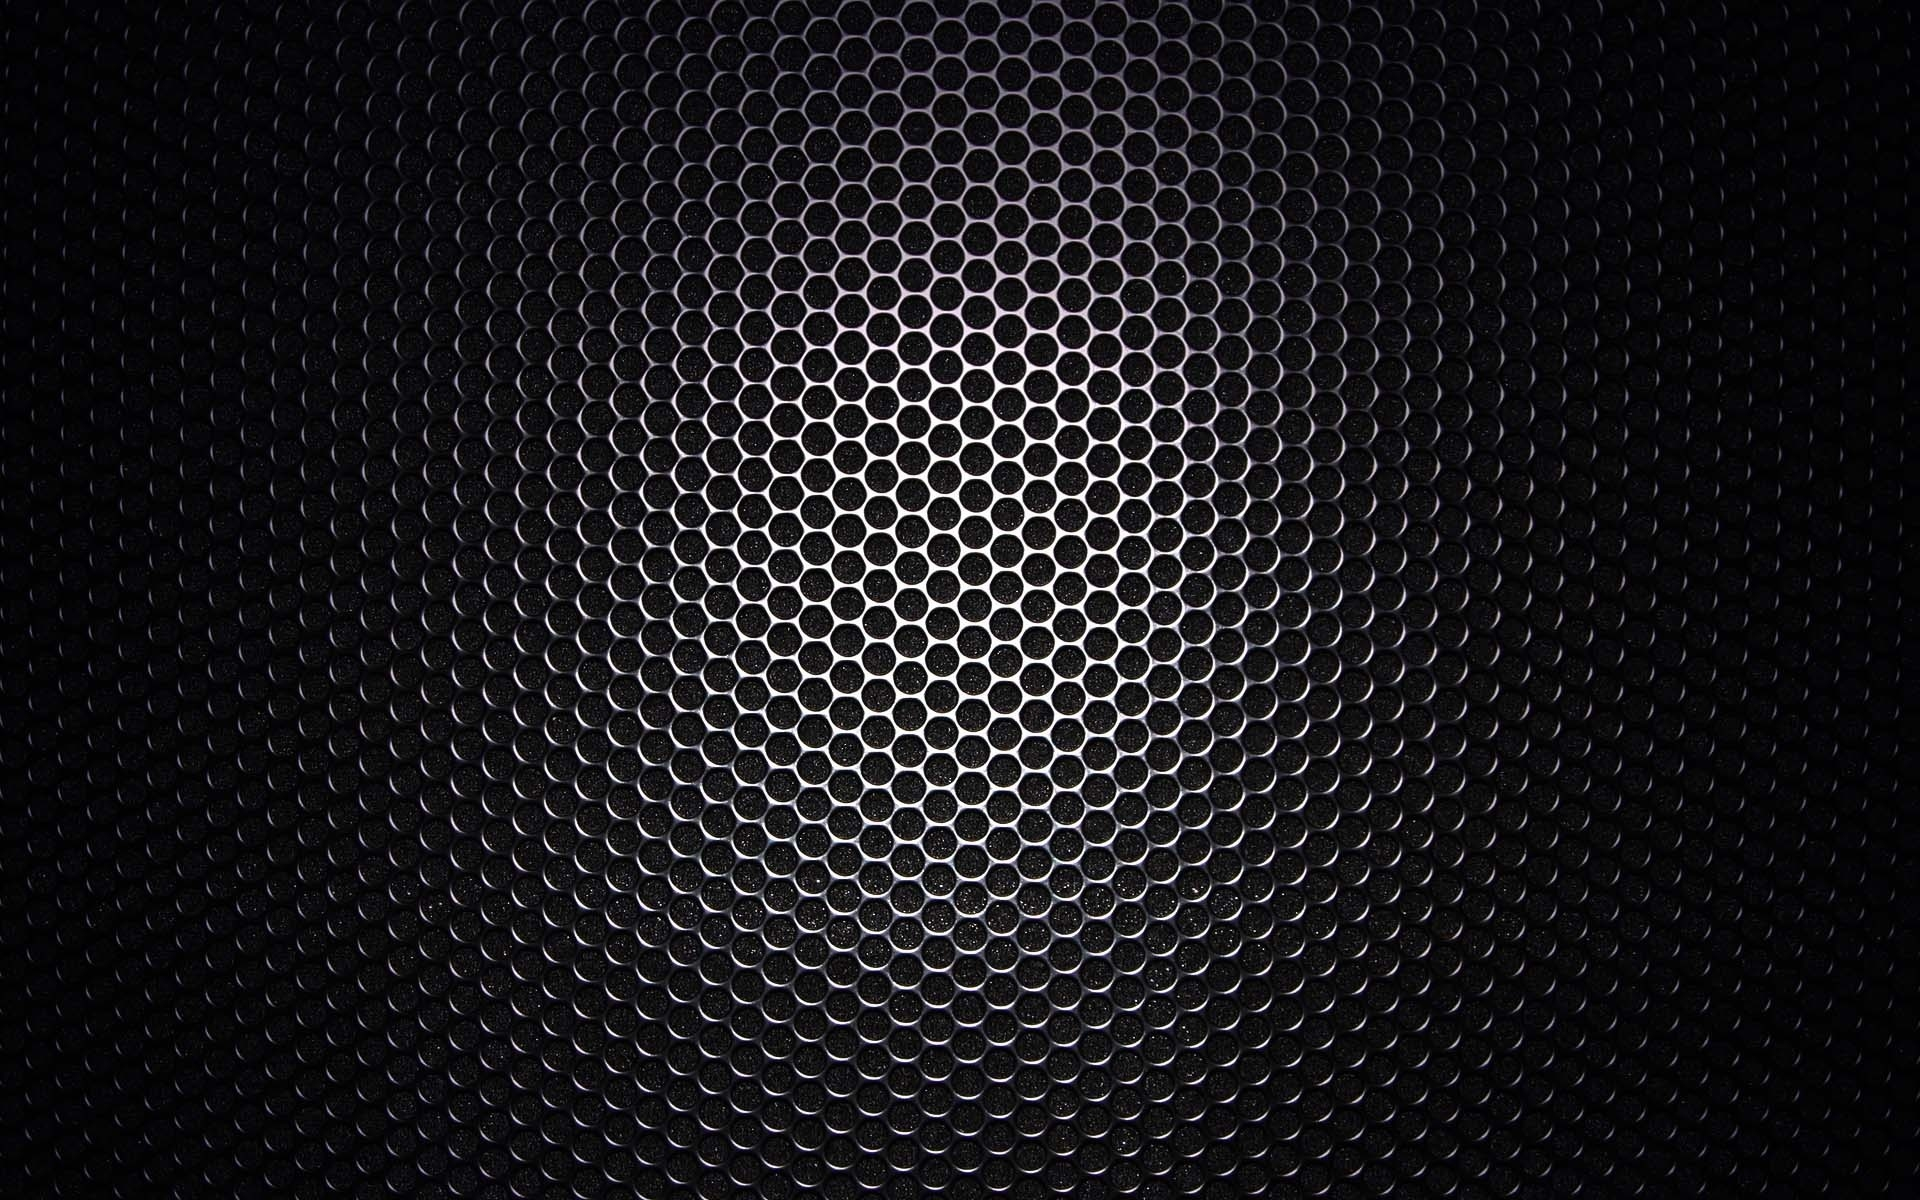 hd metal wallpapersmetallic backgrounds for free desktop download 1920x1200